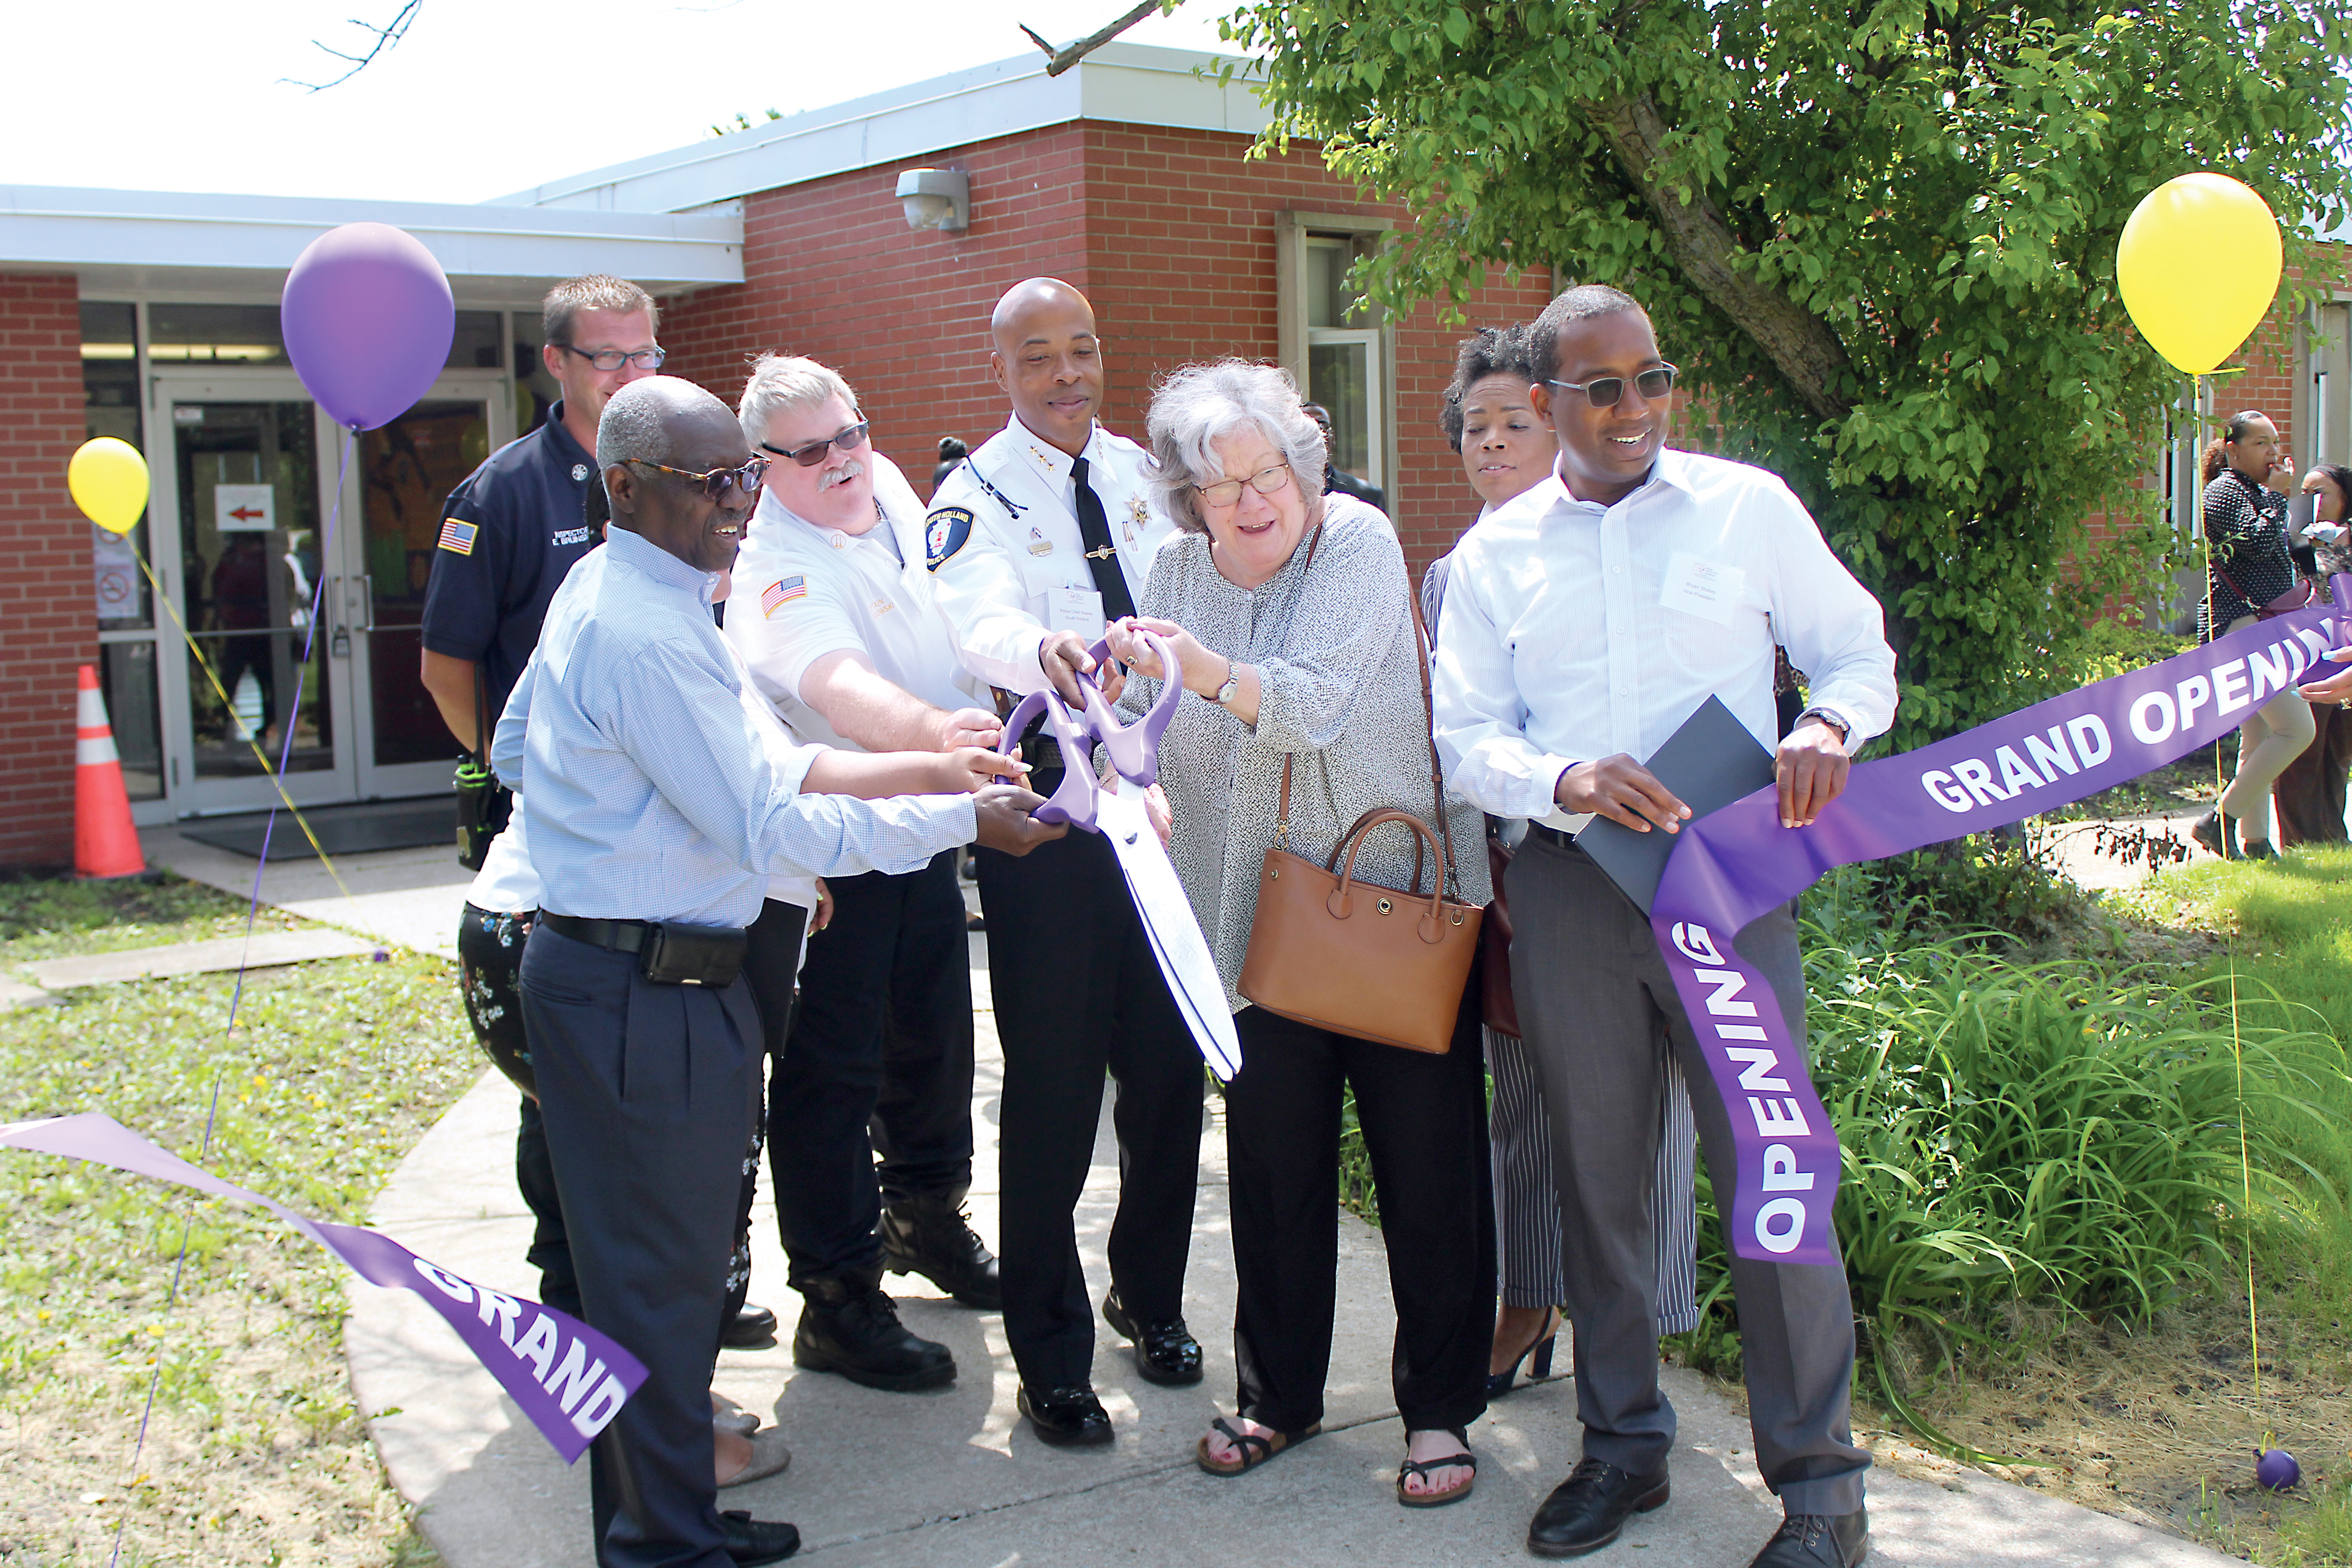 Harvey-South Holland Opening Ribbon Cutting